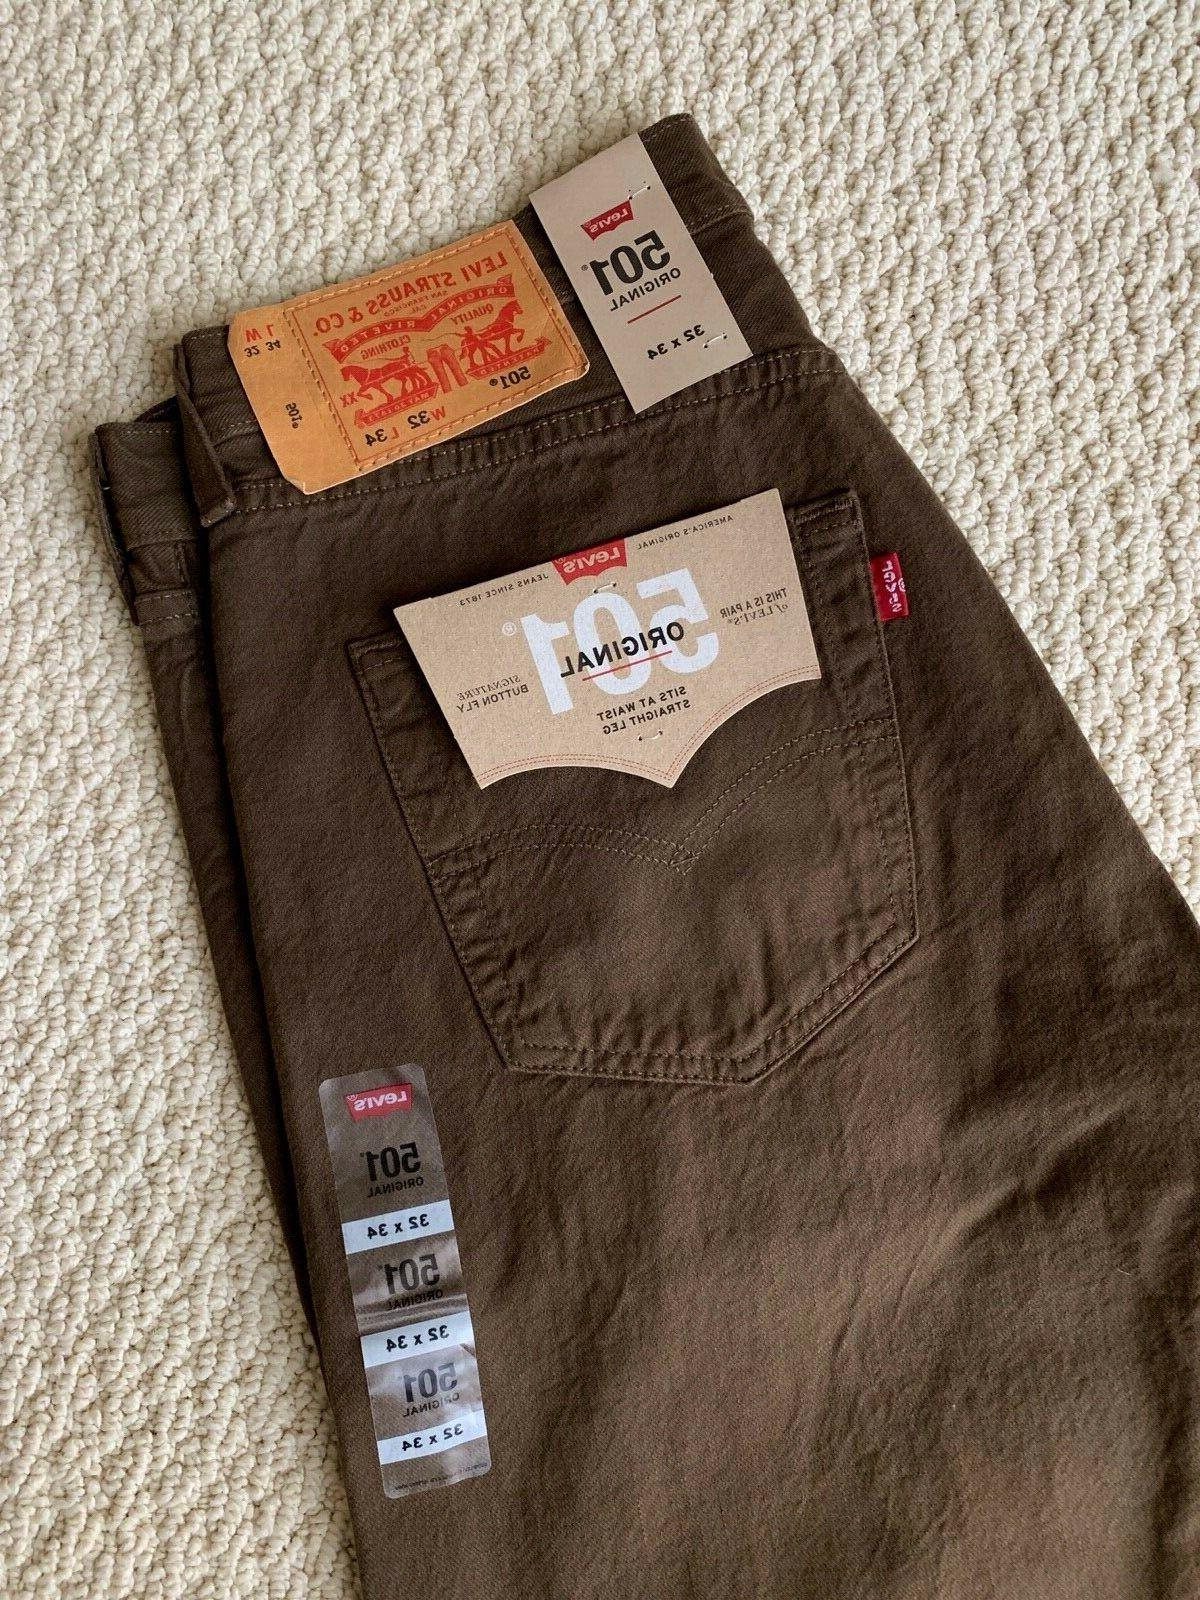 NWT Men's 501 Original Denim Straight Jeans 32 33x34